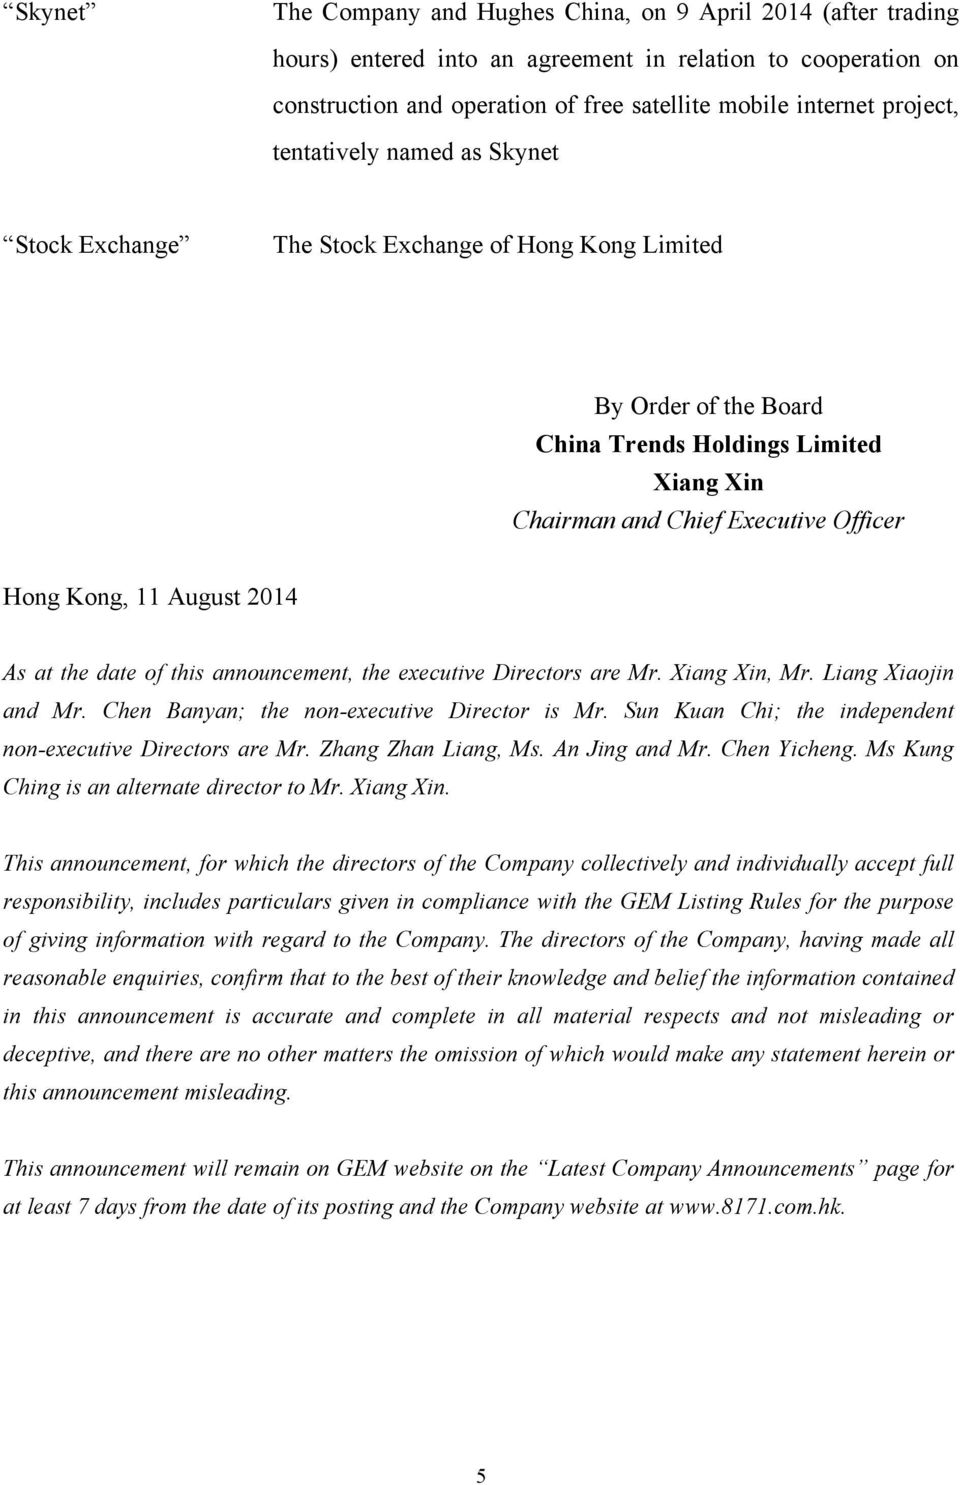 Kong, 11 August 2014 As at the date of this announcement, the executive Directors are Mr. Xiang Xin, Mr. Liang Xiaojin and Mr. Chen Banyan; the non-executive Director is Mr.